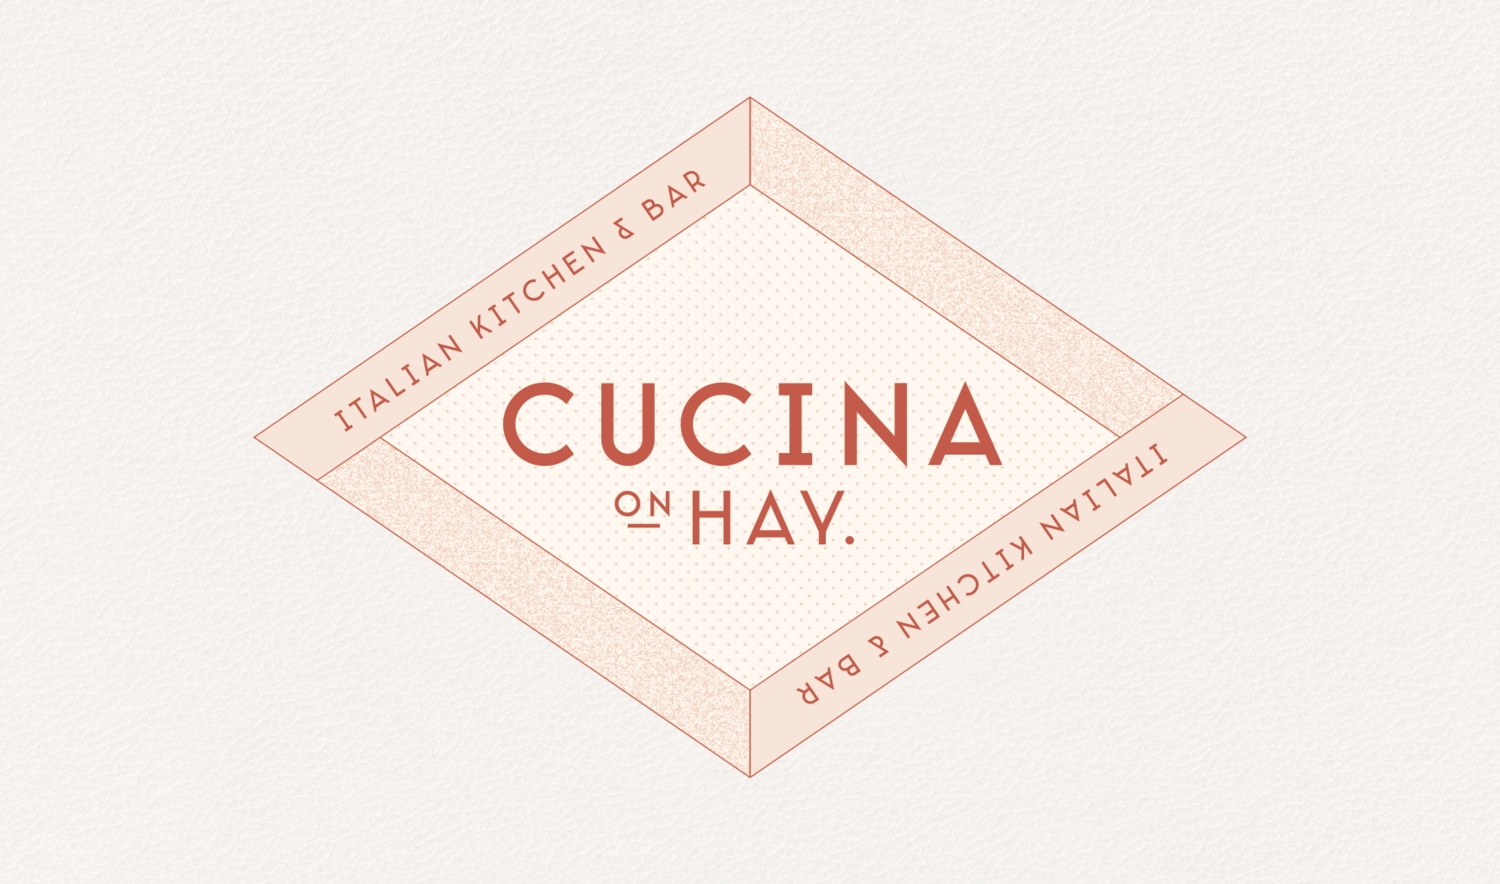 CUCINA ON HAY CASE STUDY